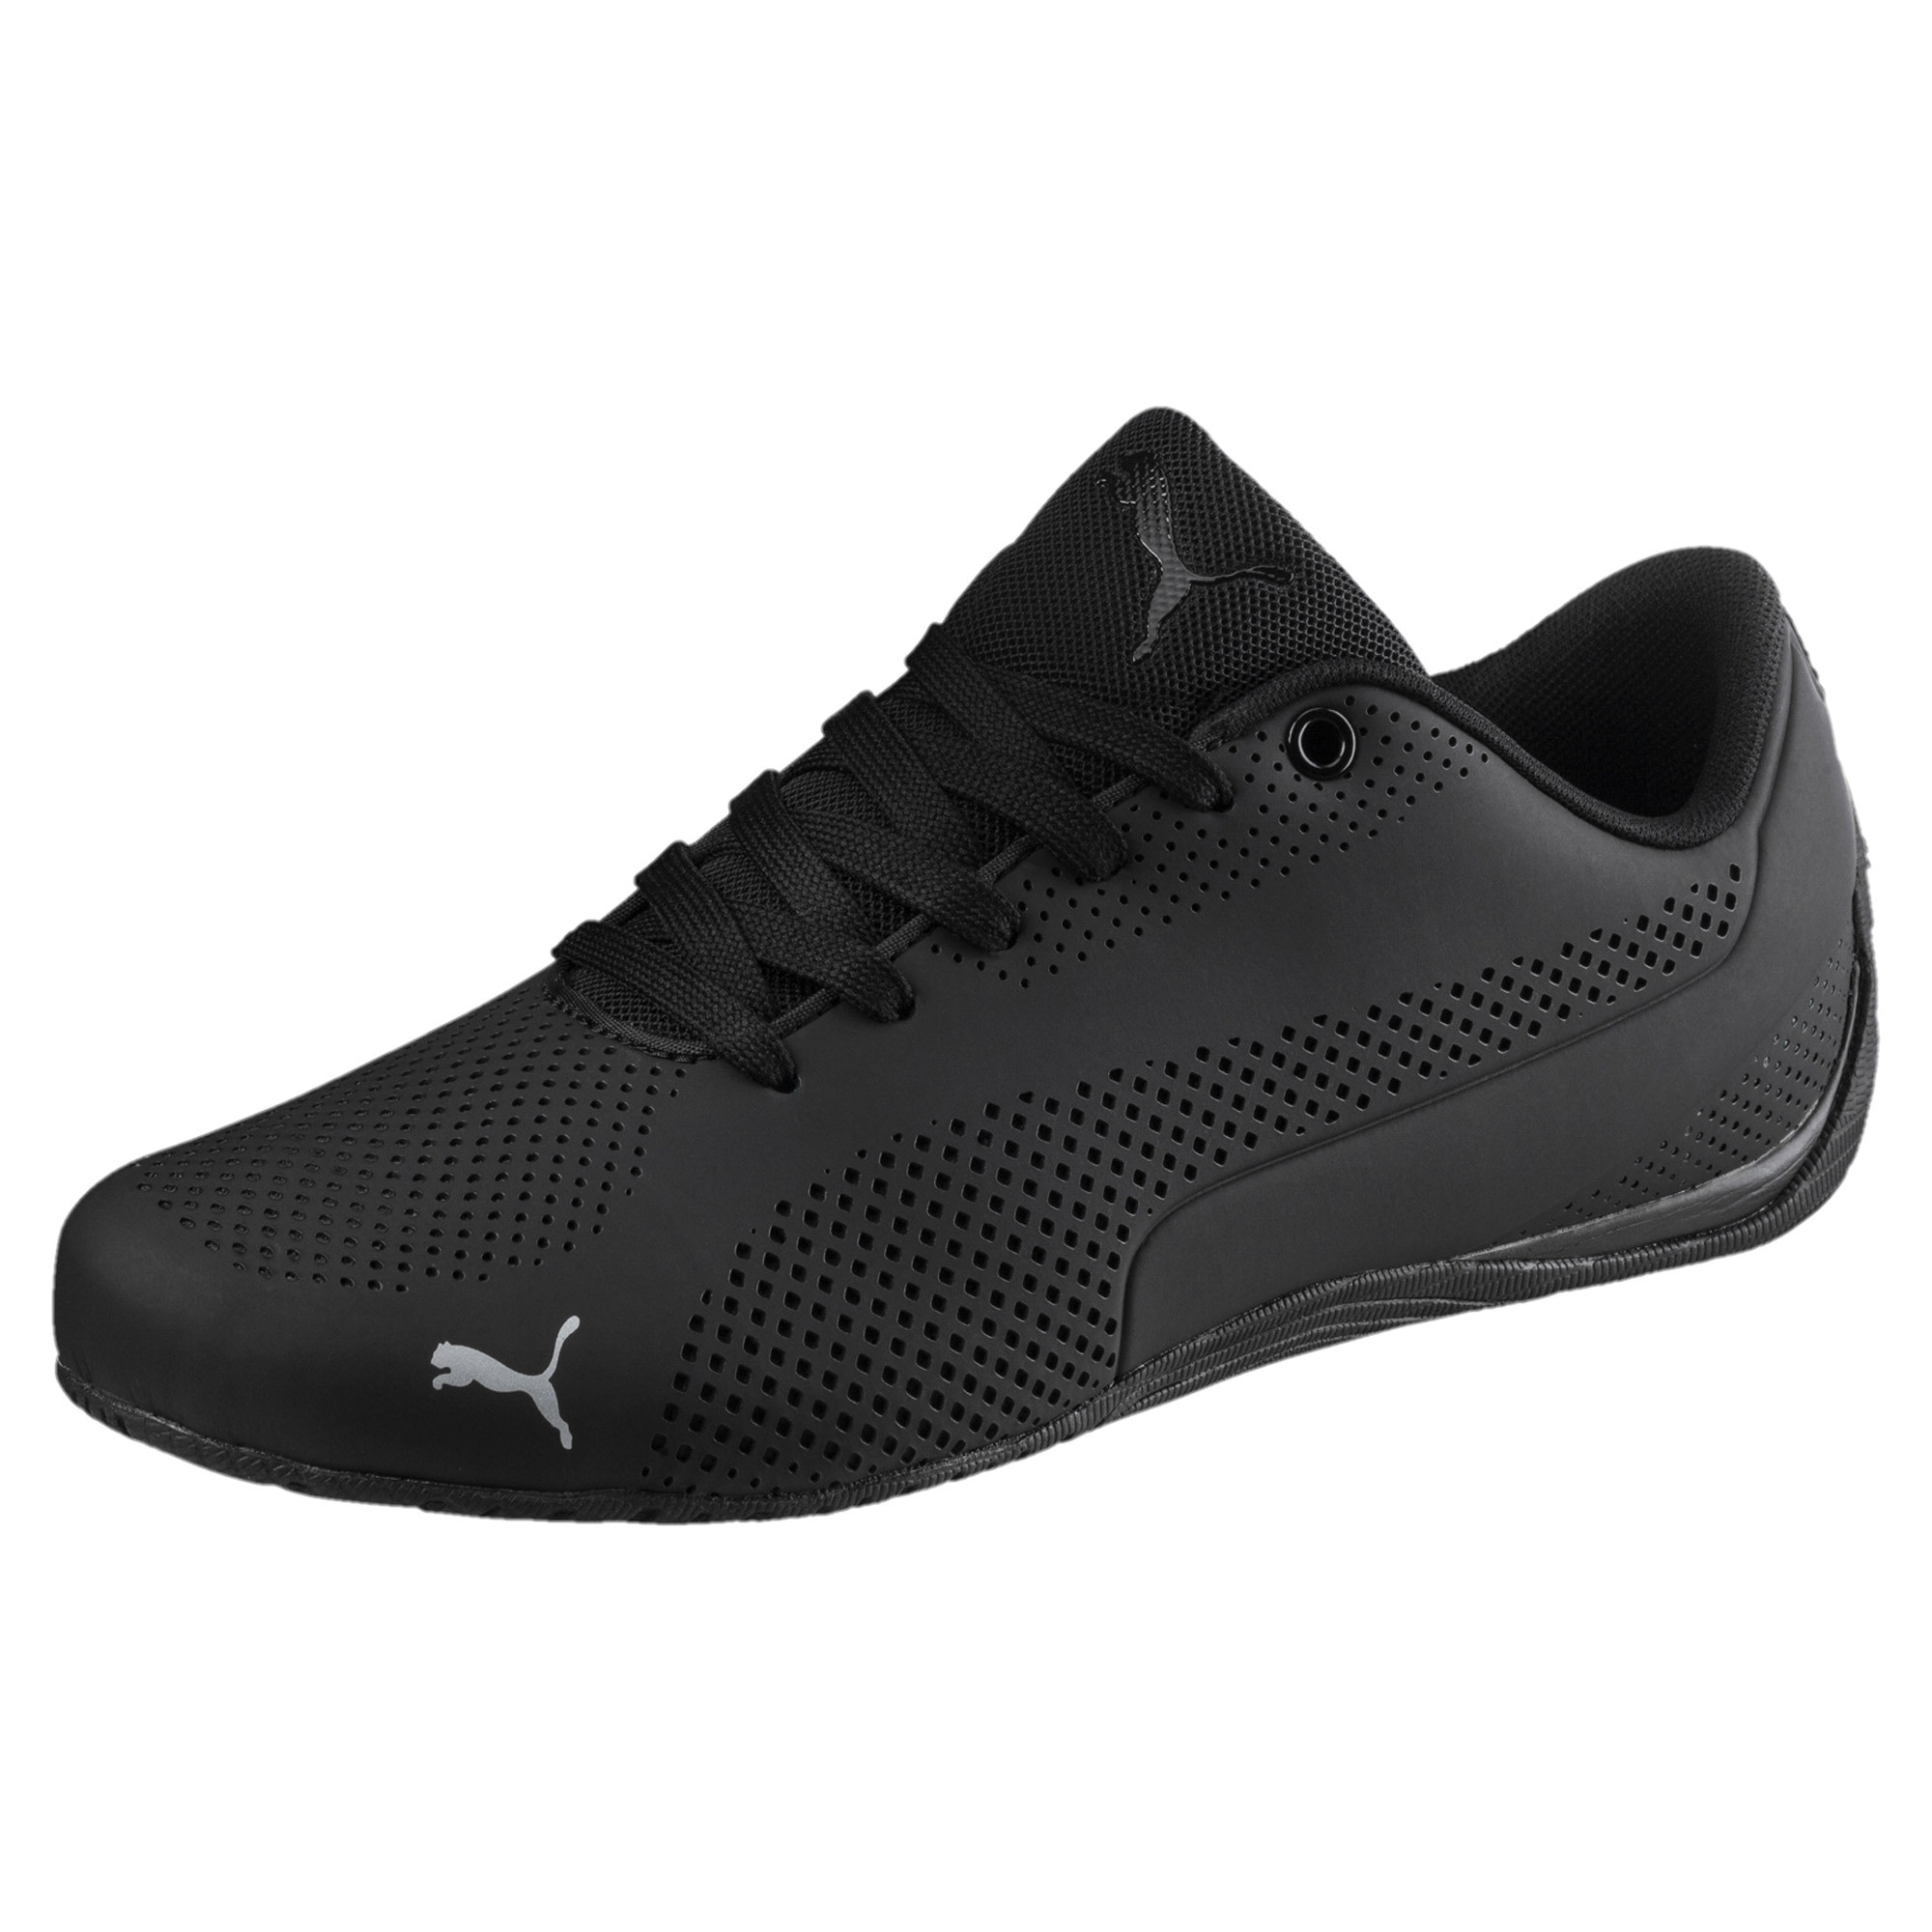 PUMA-Drift-Cat-Ultra-Reflective-Men-039-s-Shoes-Men-Shoe-Sport-Classics miniatura 4